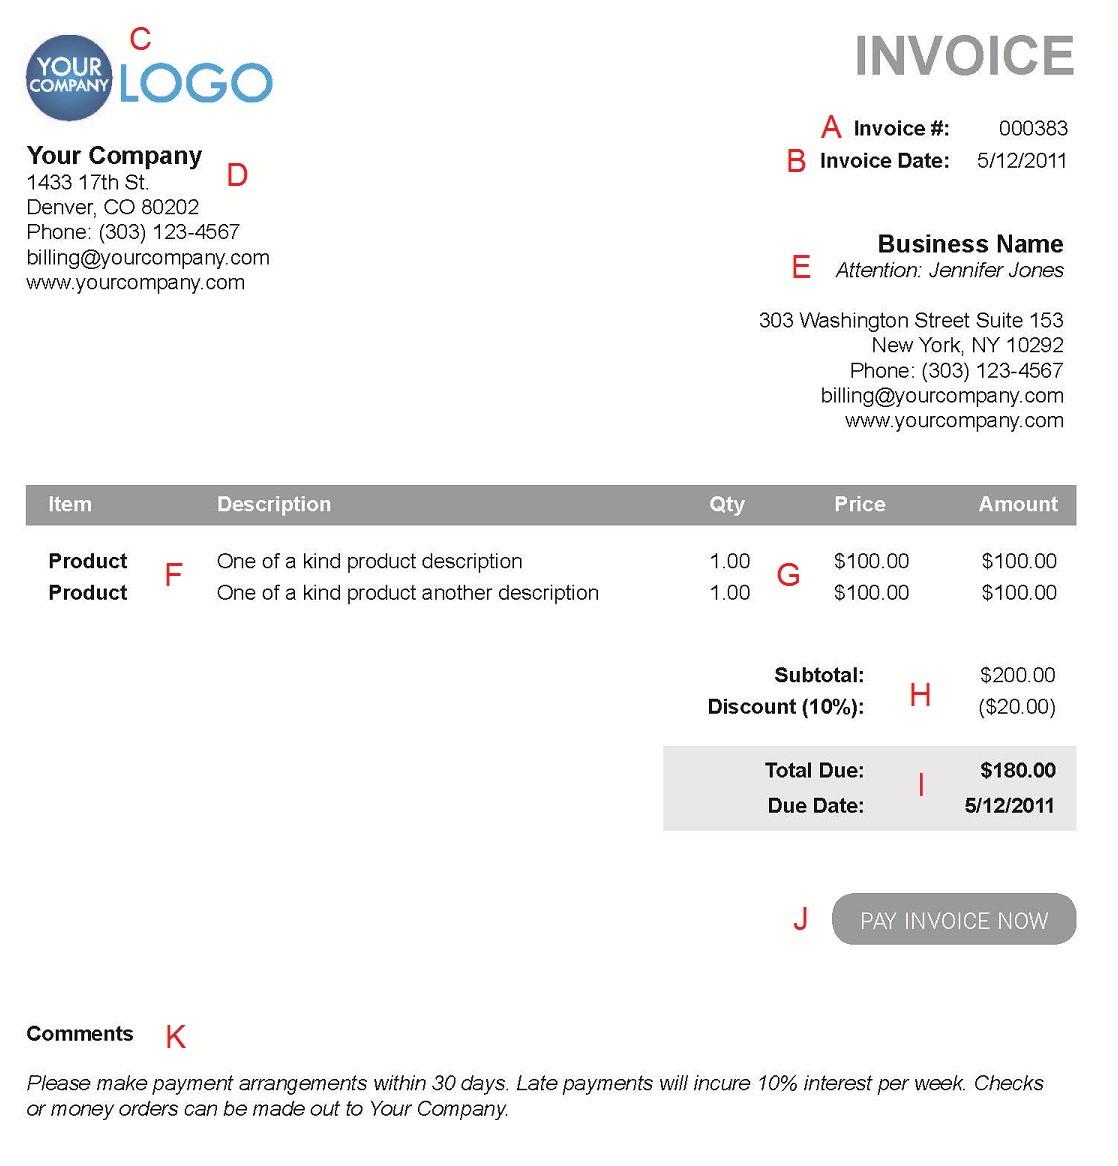 Totallocalus  Unusual The  Different Sections Of An Electronic Payment Invoice With Glamorous A  With Astonishing Invoice Sample Australia Also How To Prepare Invoice In Addition Sample Of Service Invoice And Free Software For Billing And Invoicing As Well As Invoice Collection Letter Additionally Best Invoice Templates From Paysimplecom With Totallocalus  Glamorous The  Different Sections Of An Electronic Payment Invoice With Astonishing A  And Unusual Invoice Sample Australia Also How To Prepare Invoice In Addition Sample Of Service Invoice From Paysimplecom